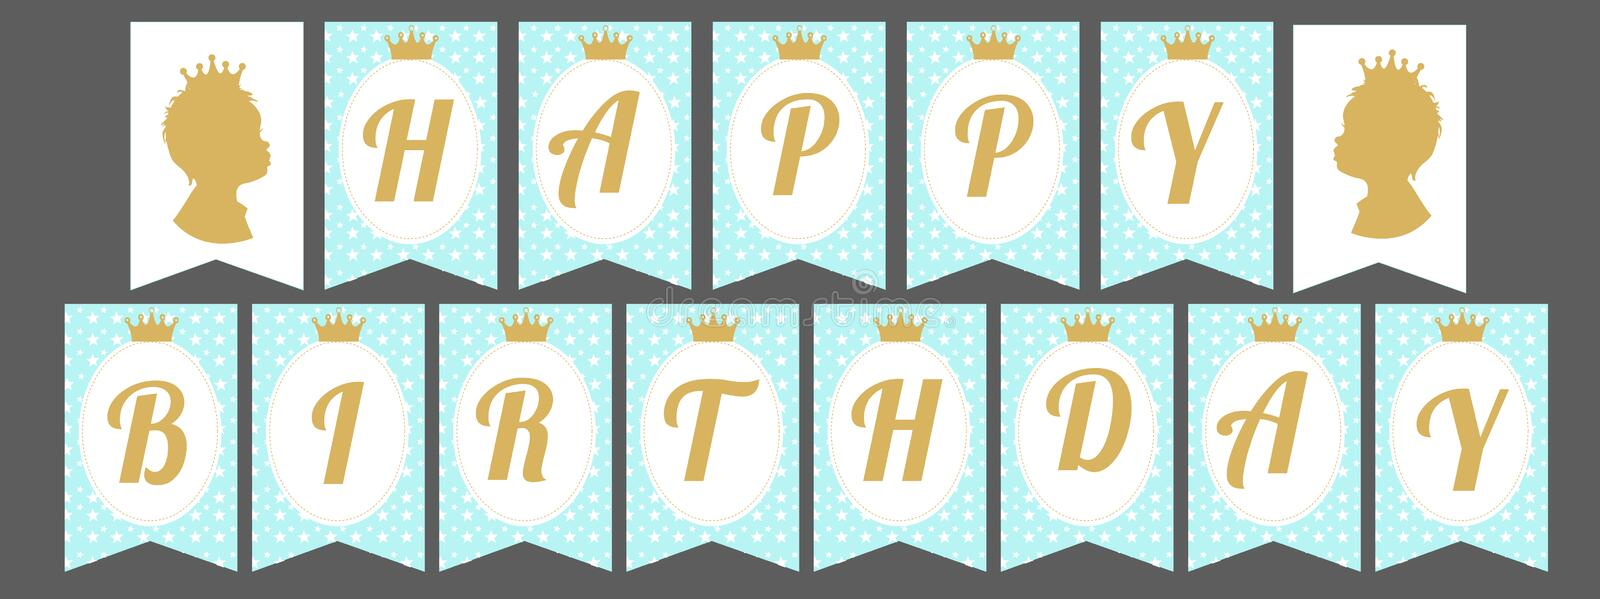 Happy Birthday Letter Template from thumbs.dreamstime.com